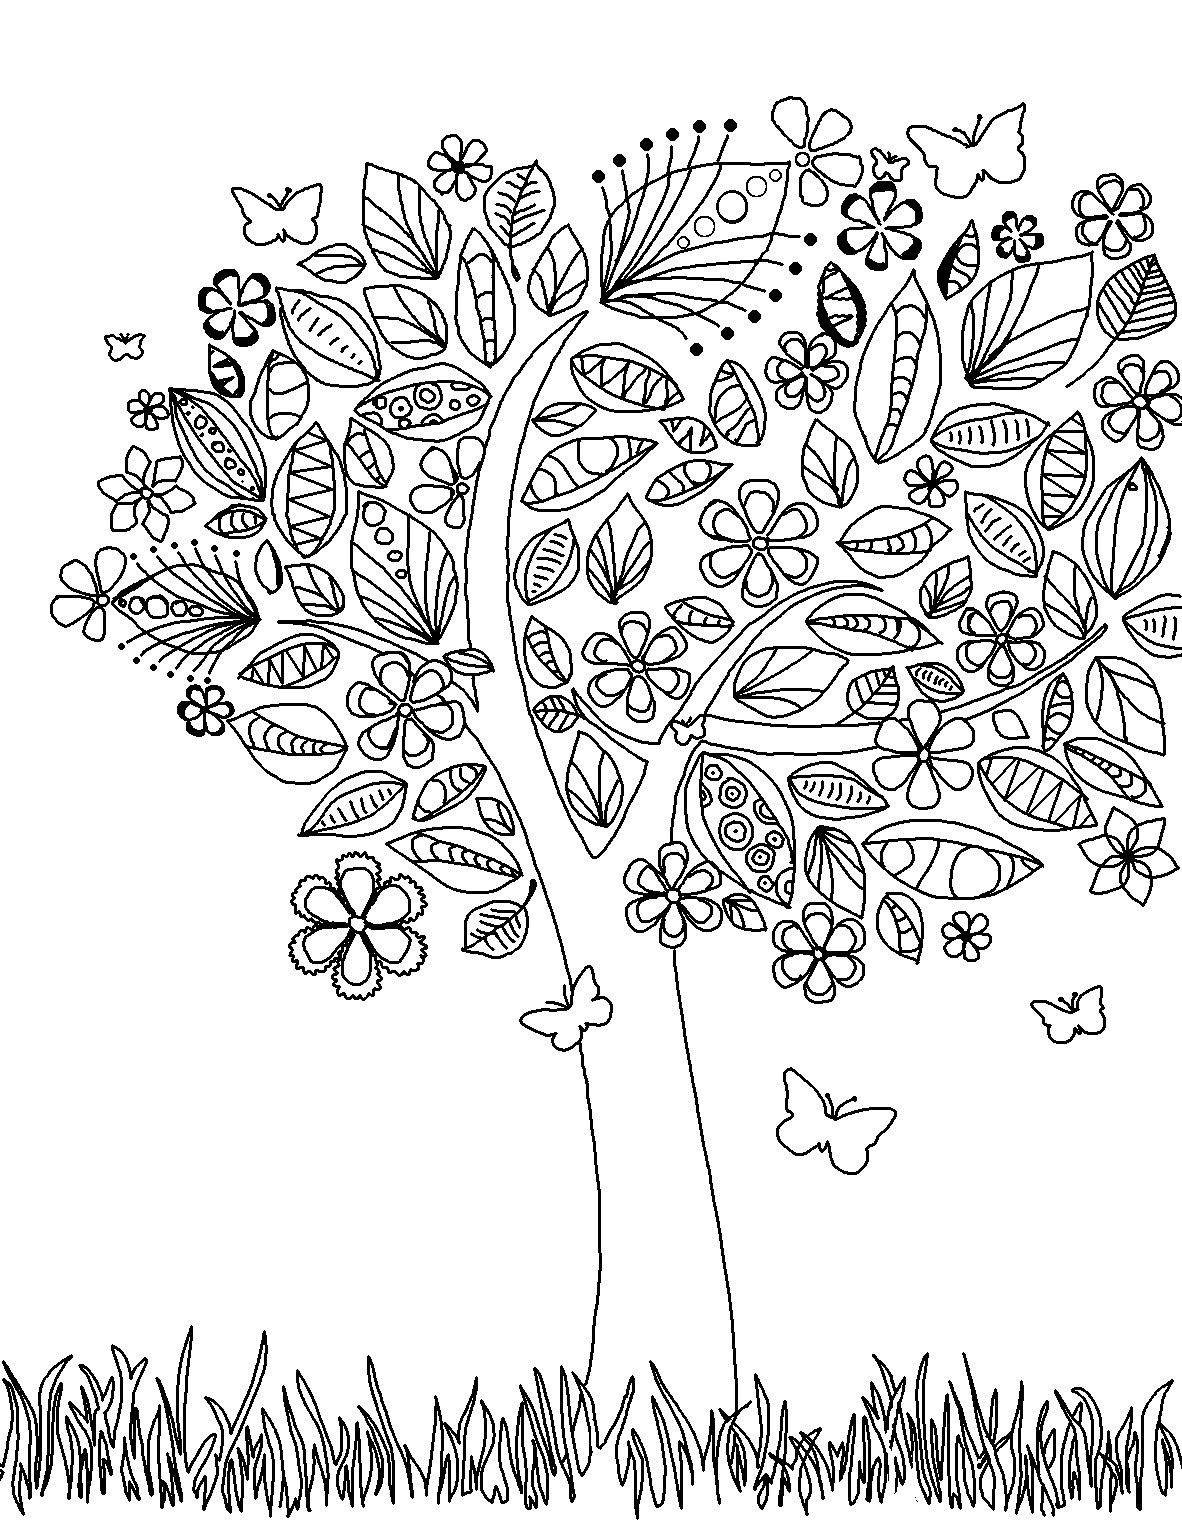 ABSTRACT TREE colouring page | Ilustraciones y dibujos | Pinterest ...